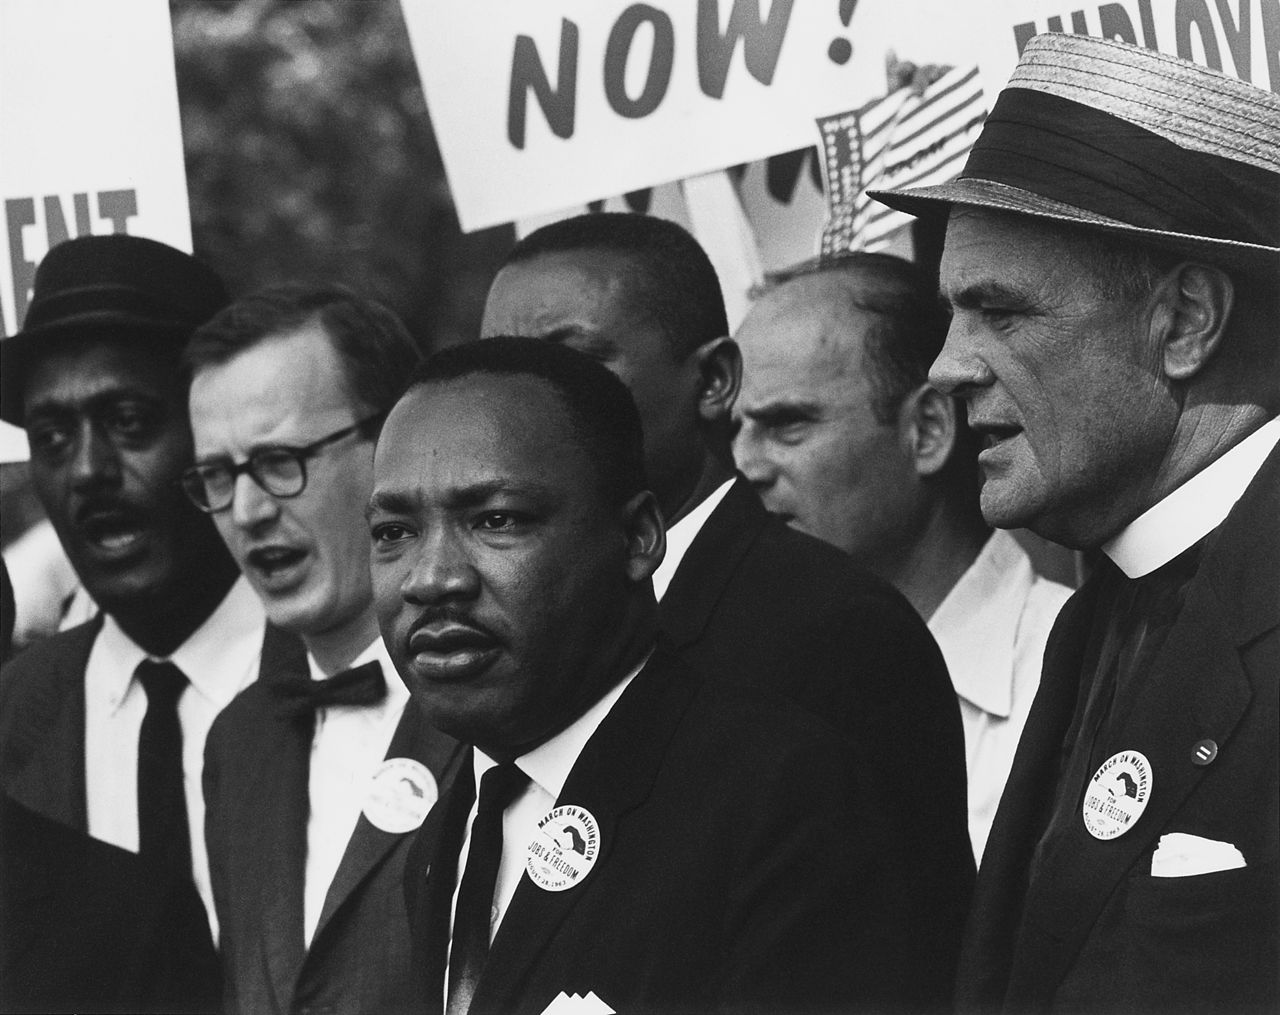 Civil Rights March on Washington, D.C. (Dr. Martin Luther King, Jr. and Mathew Ahmann in a crowd.) - National Archives and Records Administration - 542015 - Restoration